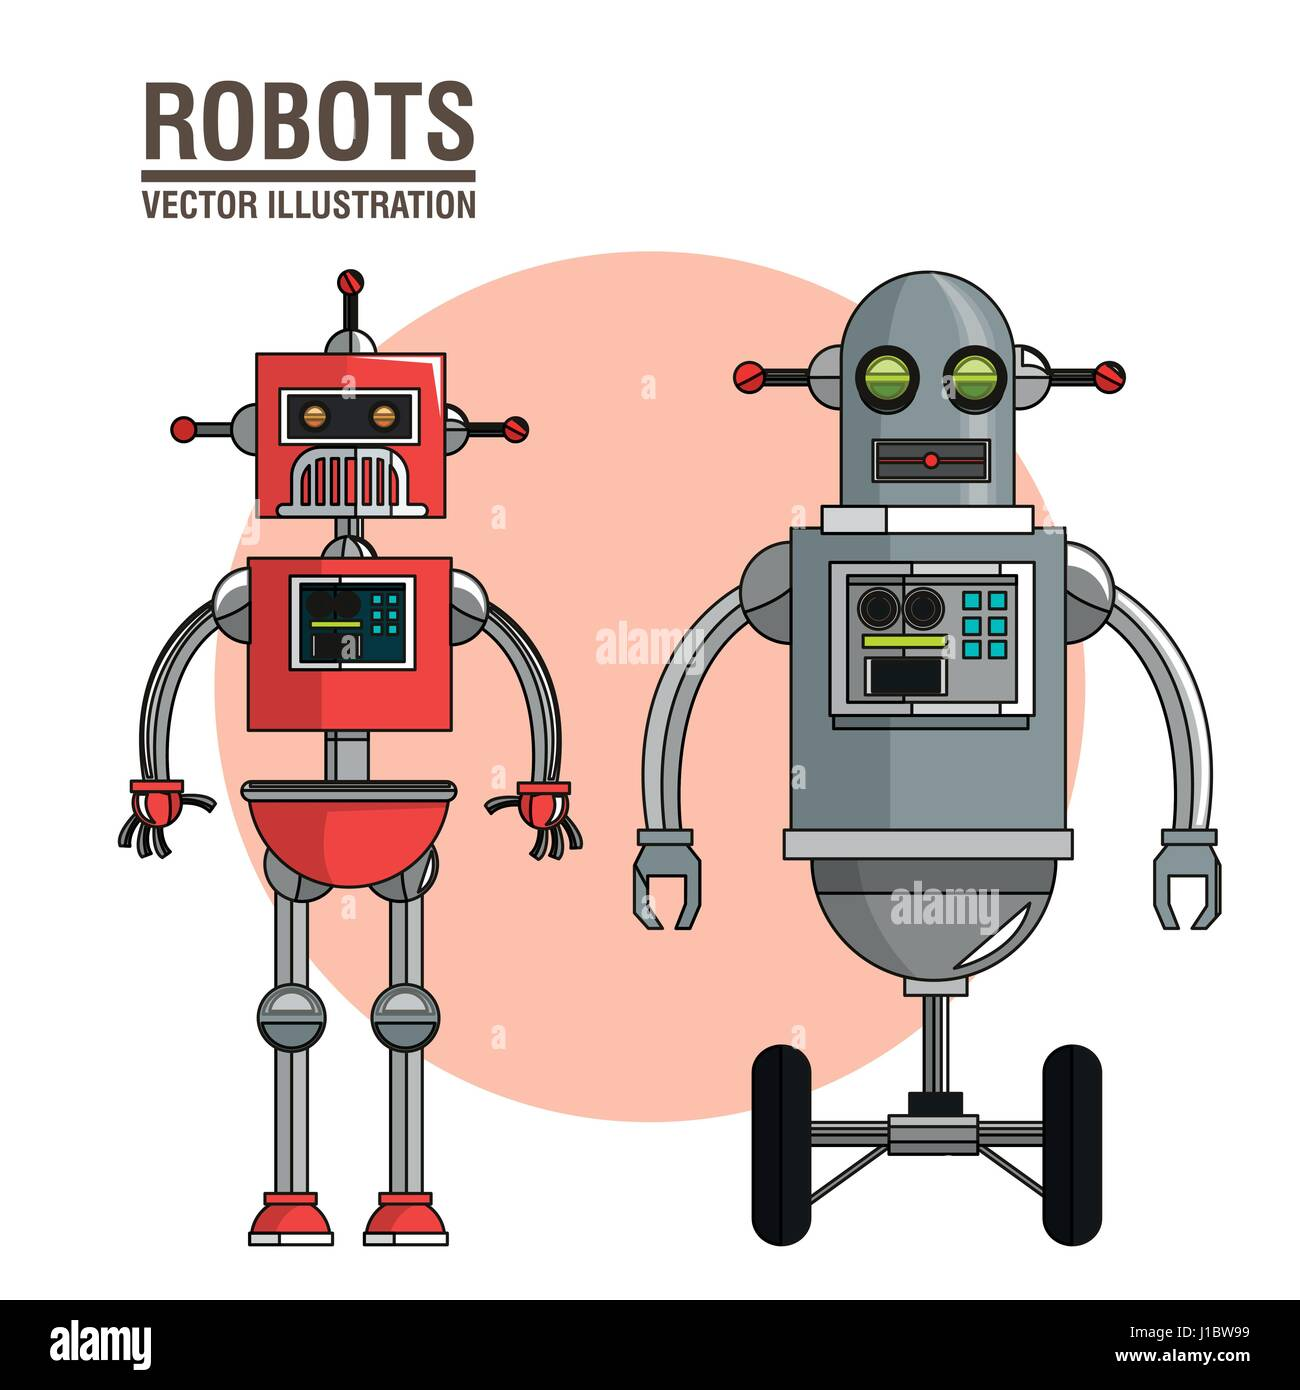 robots science interface image Stock Vector